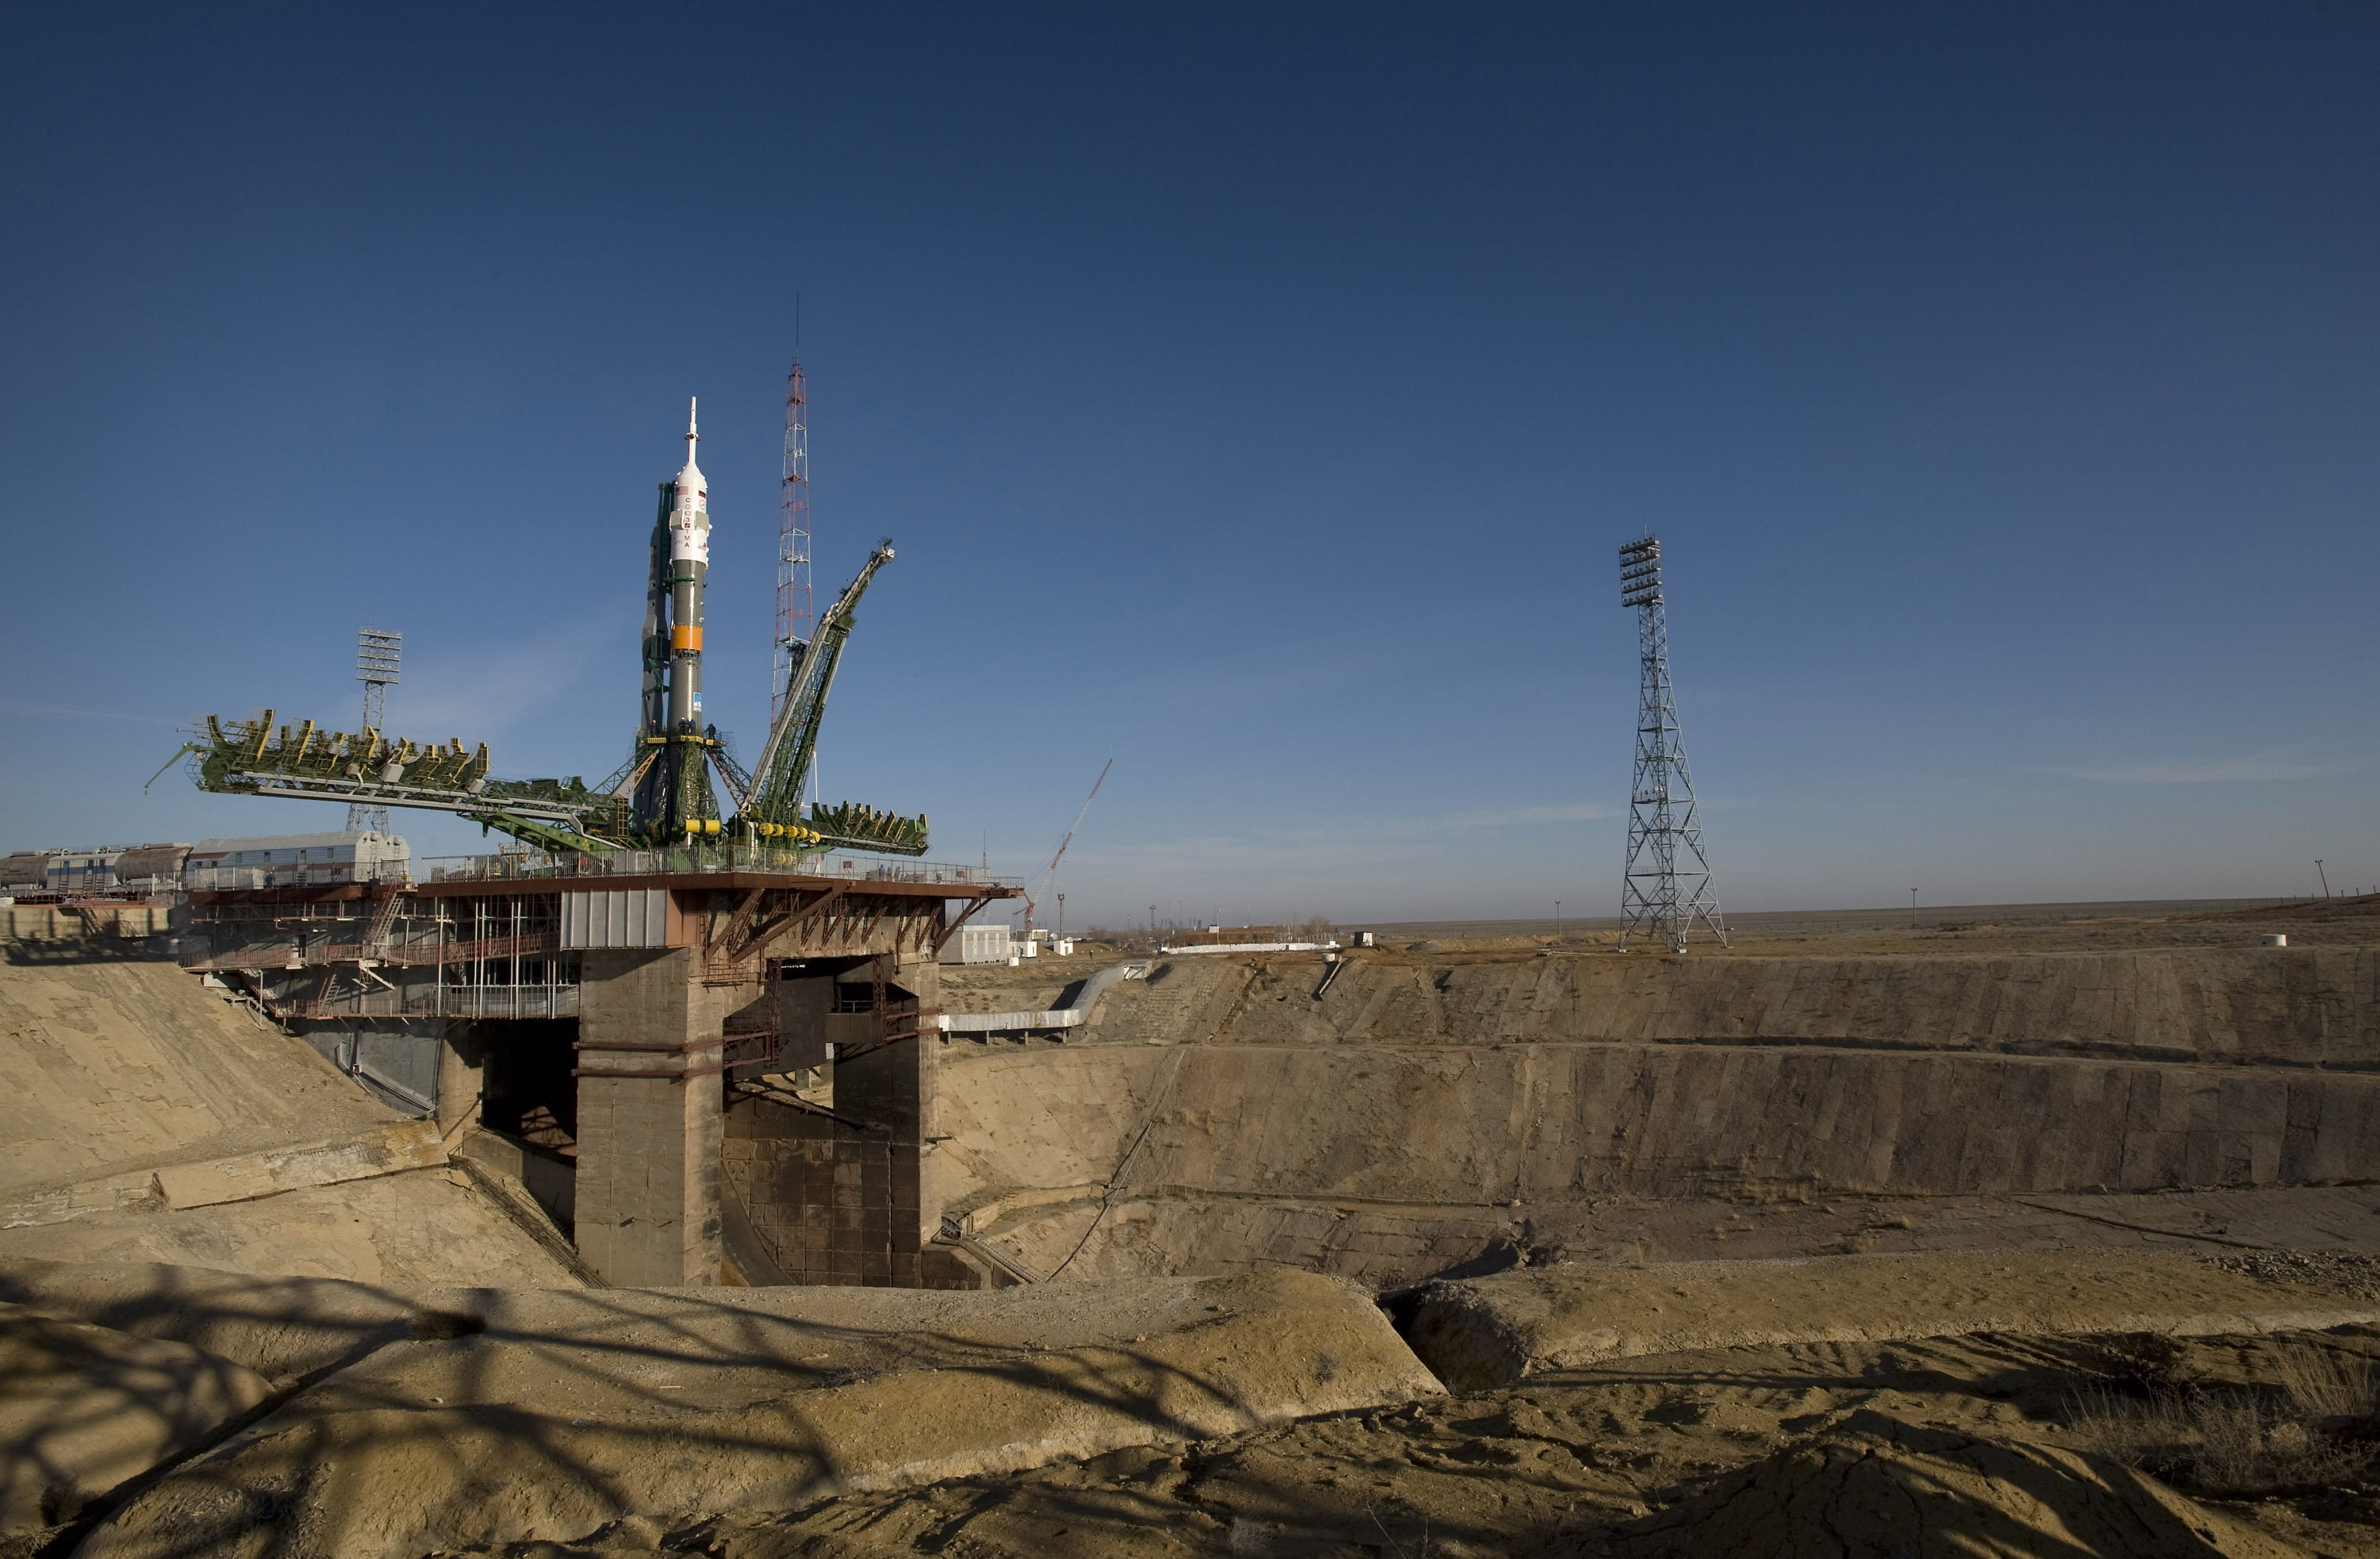 http://upload.wikimedia.org/wikipedia/commons/5/59/Soyuz_expedition_19_launch_pad.jpg